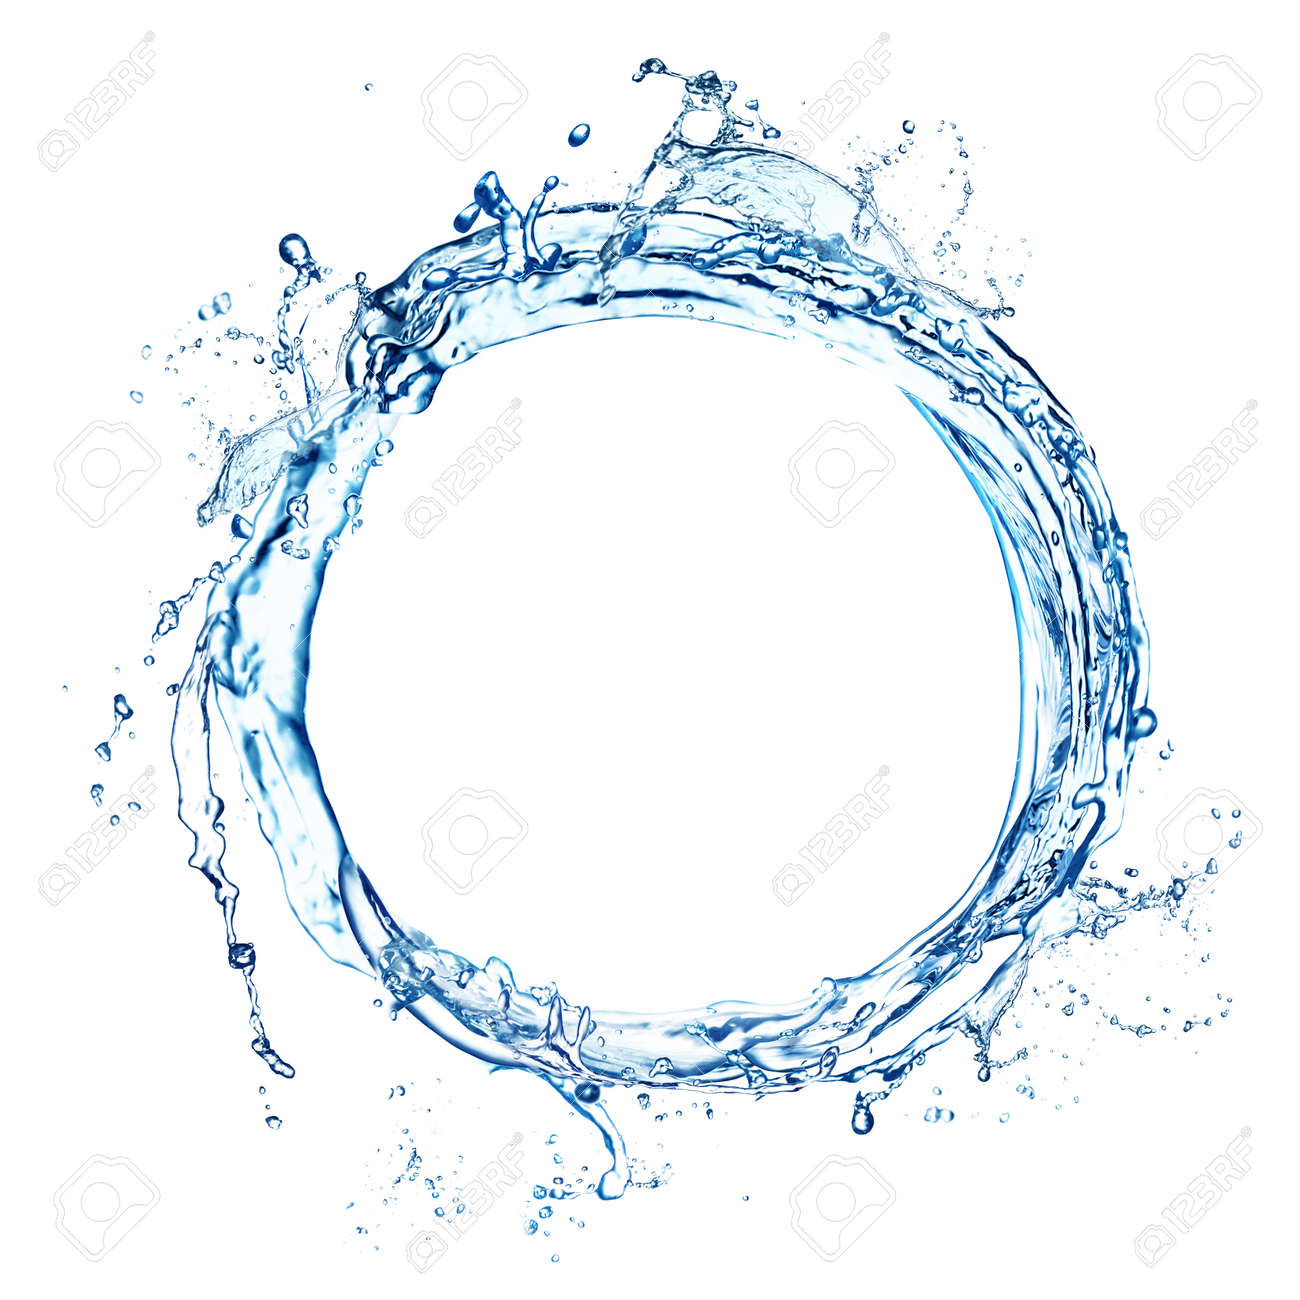 Abstract splash of water isolated on white - 167769017